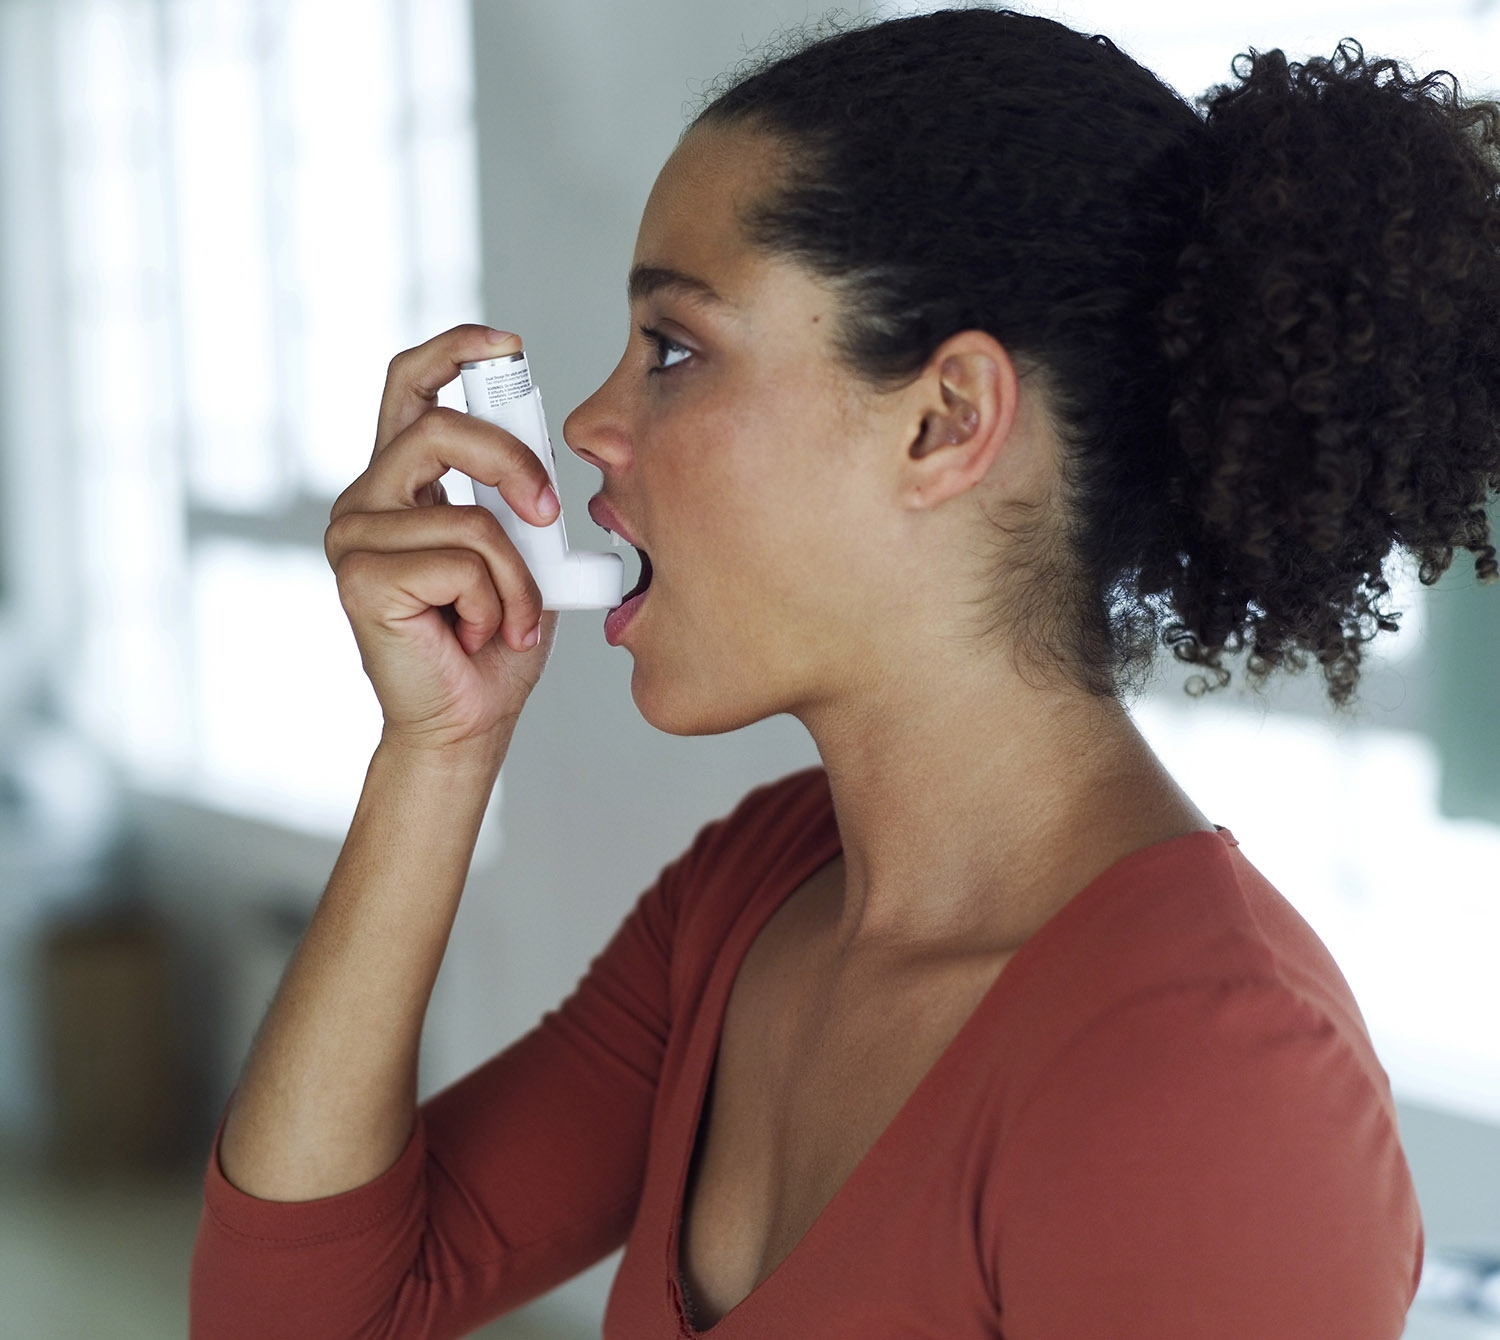 A young woman about to use an inhaler.